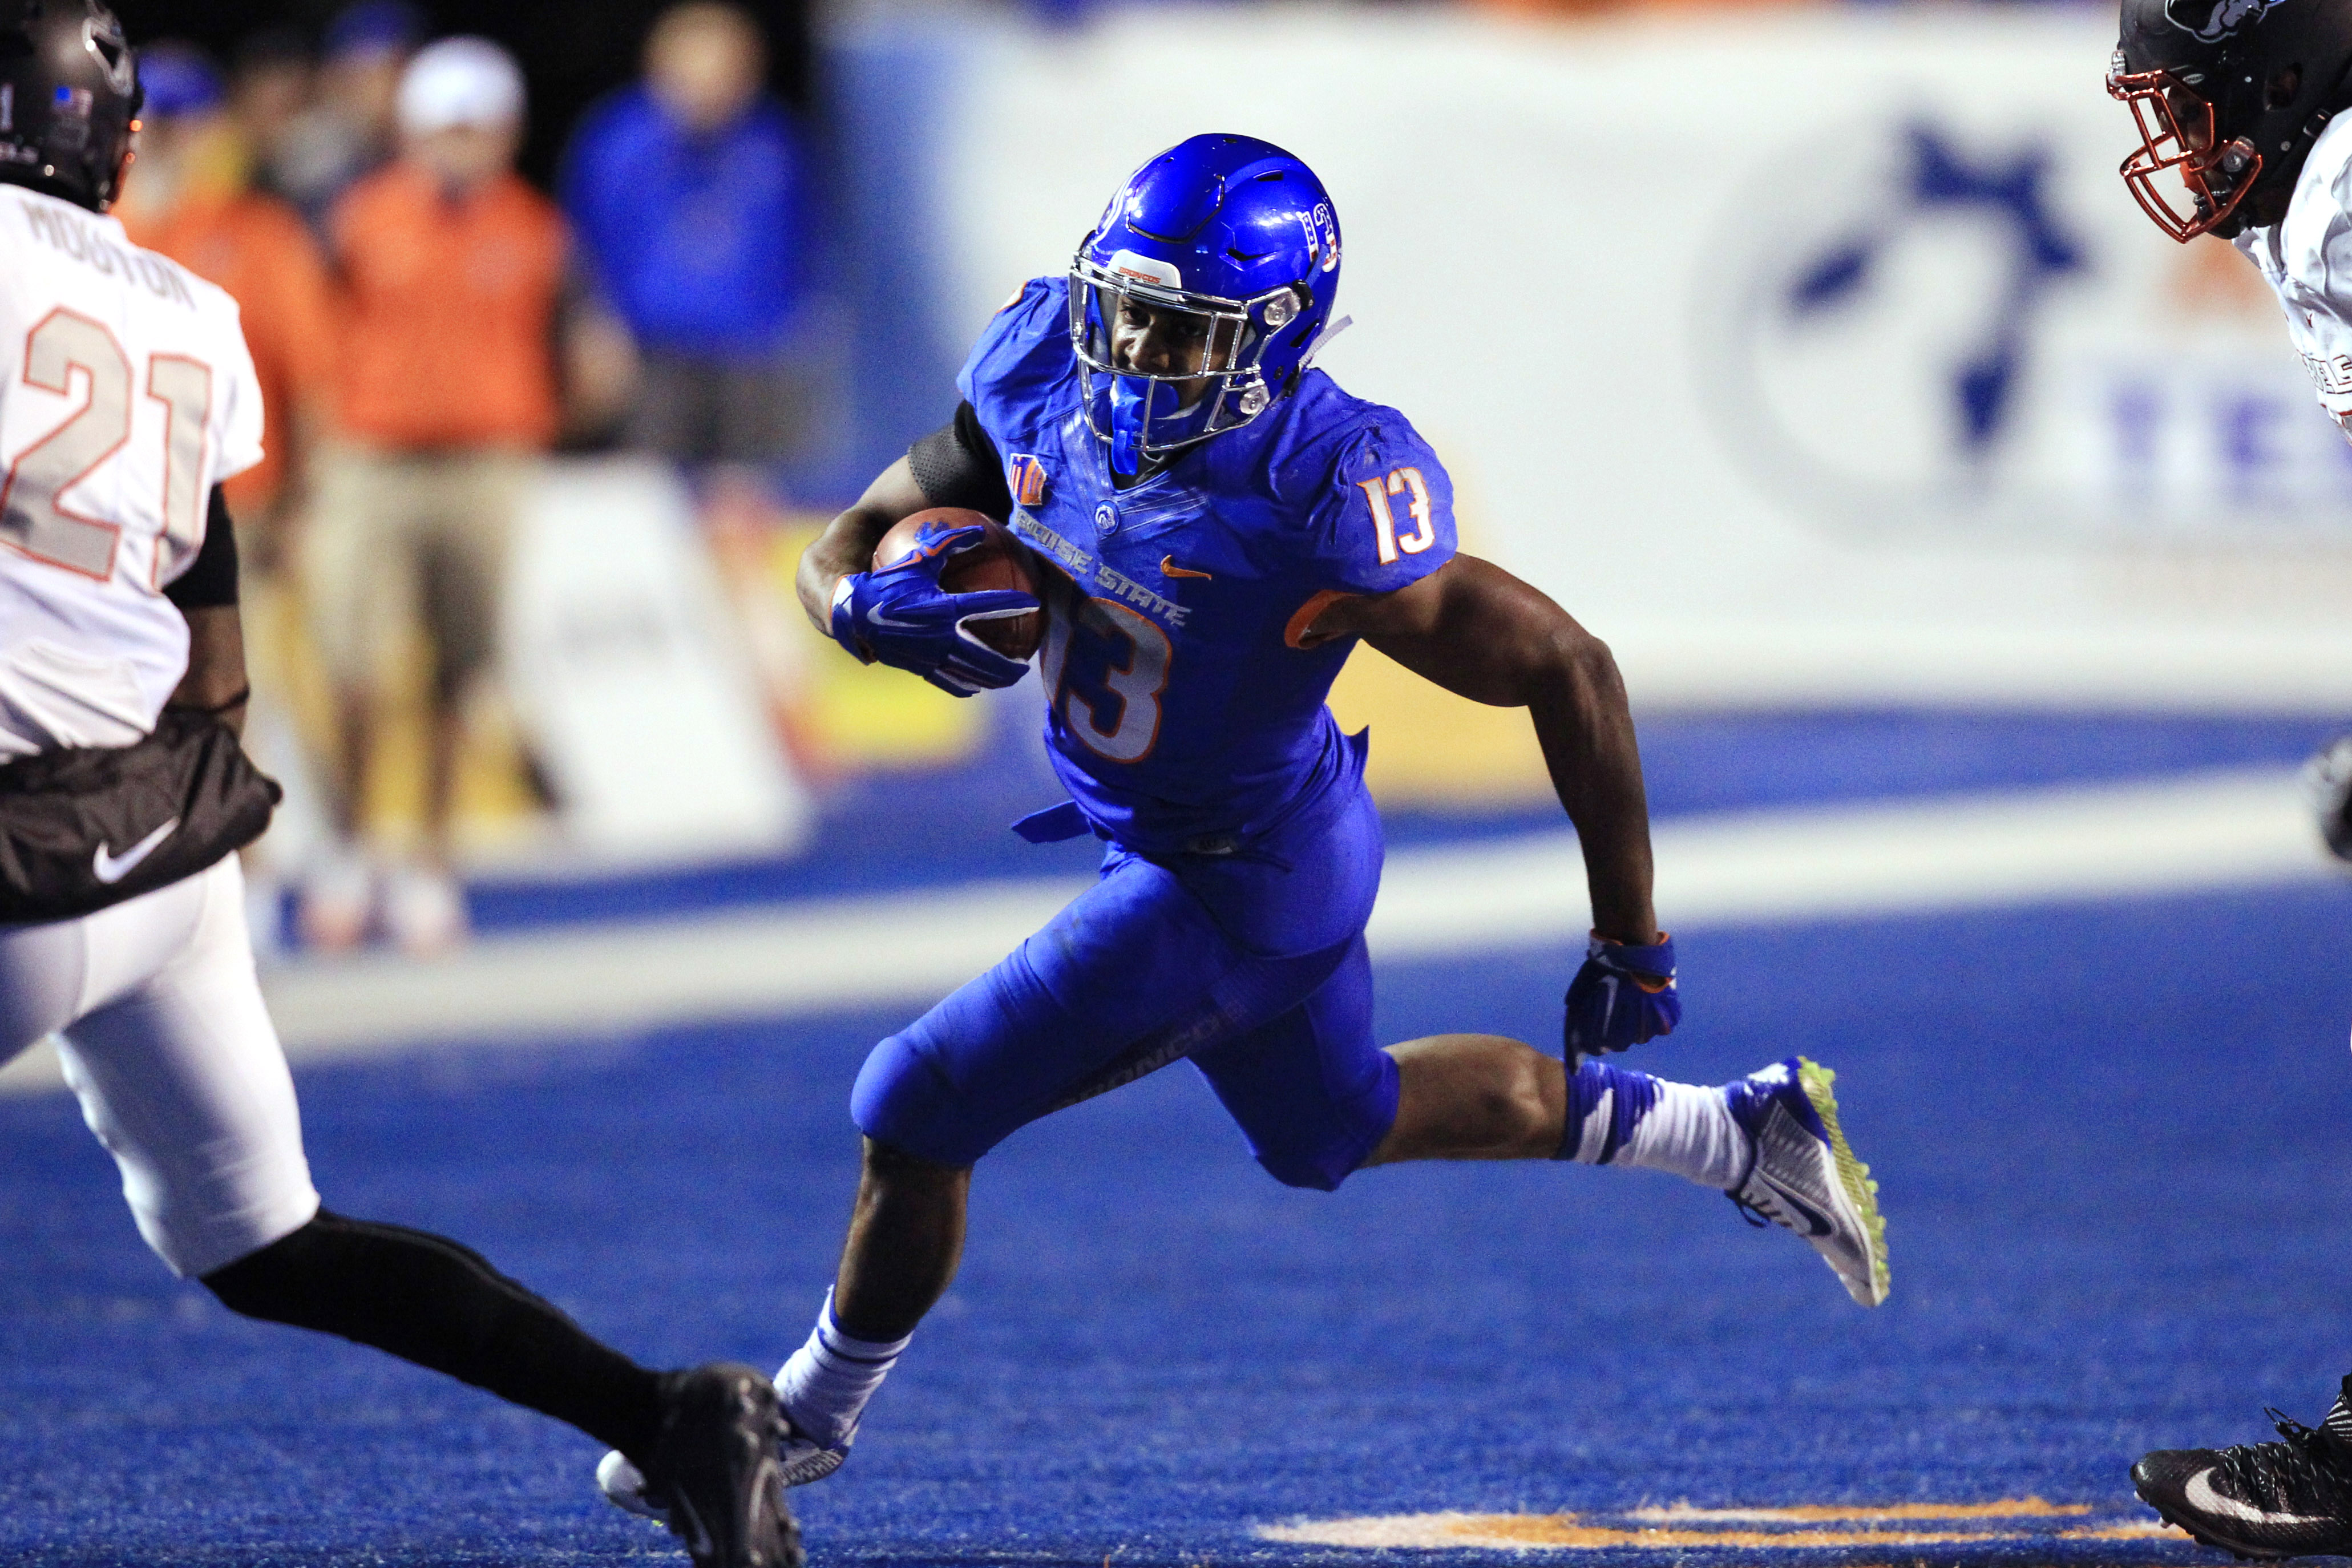 Nov 18, 2016; Boise, ID, USA; Boise State Broncos running back Jeremy McNichols (13) runs the ball against the UNLV Rebels in the first half at Albertsons Stadium. Mandatory Credit: Brian Losness-USA TODAY Sports